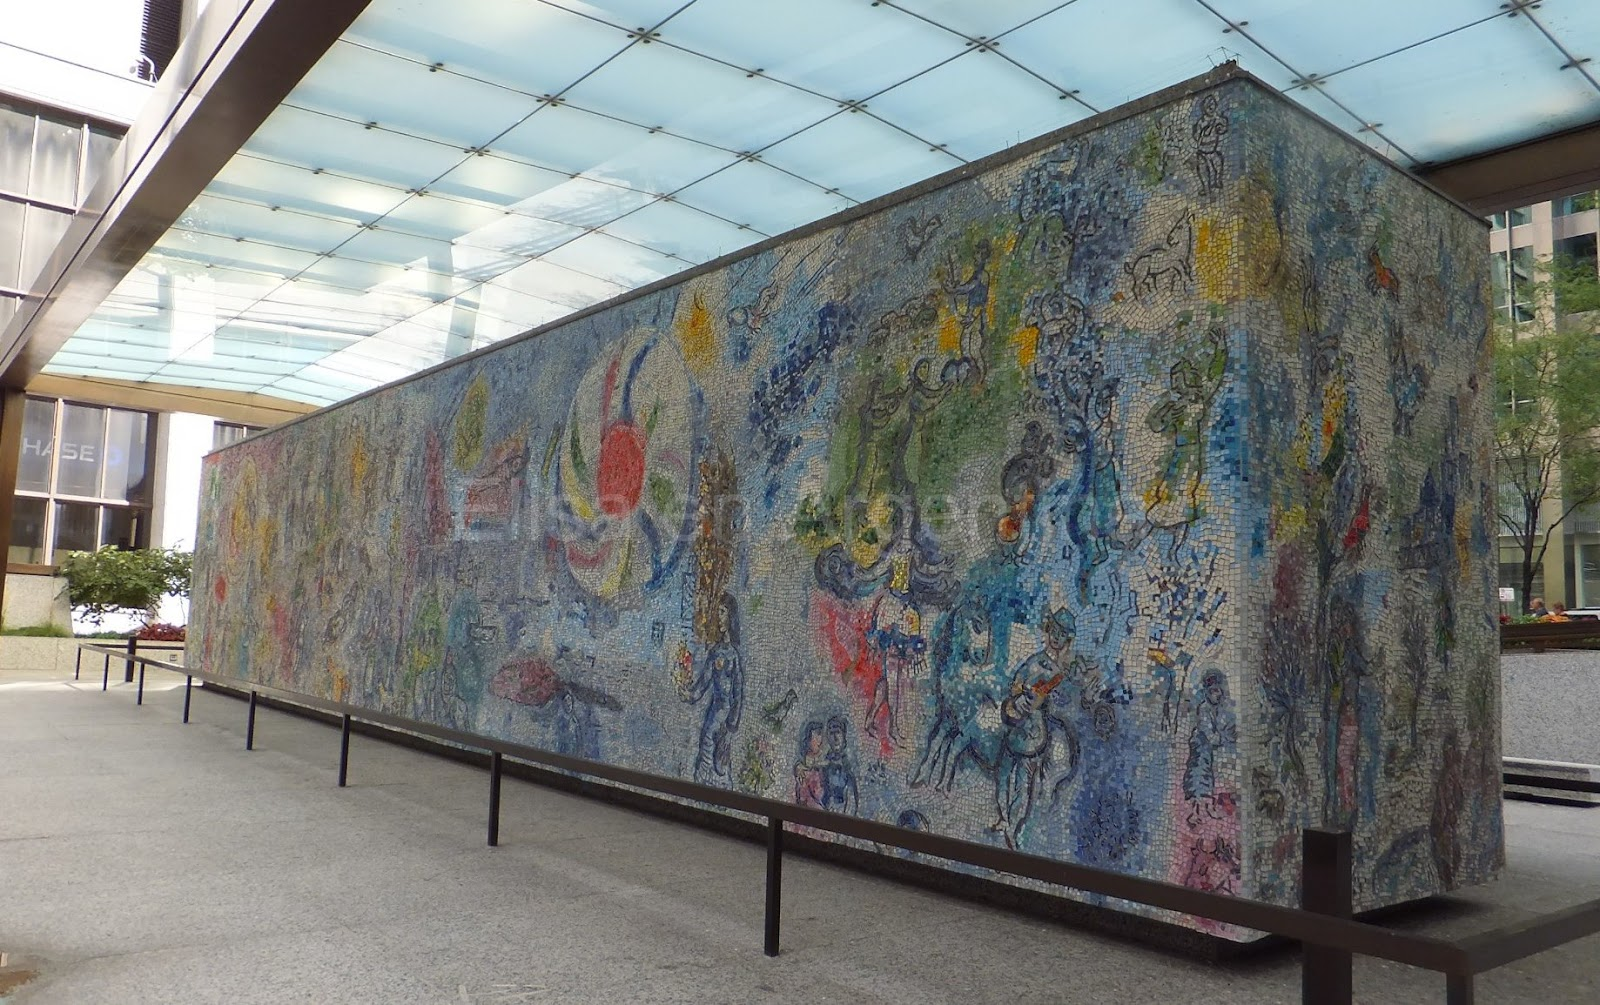 Las Cuatro Estaciones, Chagall, The Loop, Chicago, Elisa N, Blog de Viajes, Lifestyle, Travel